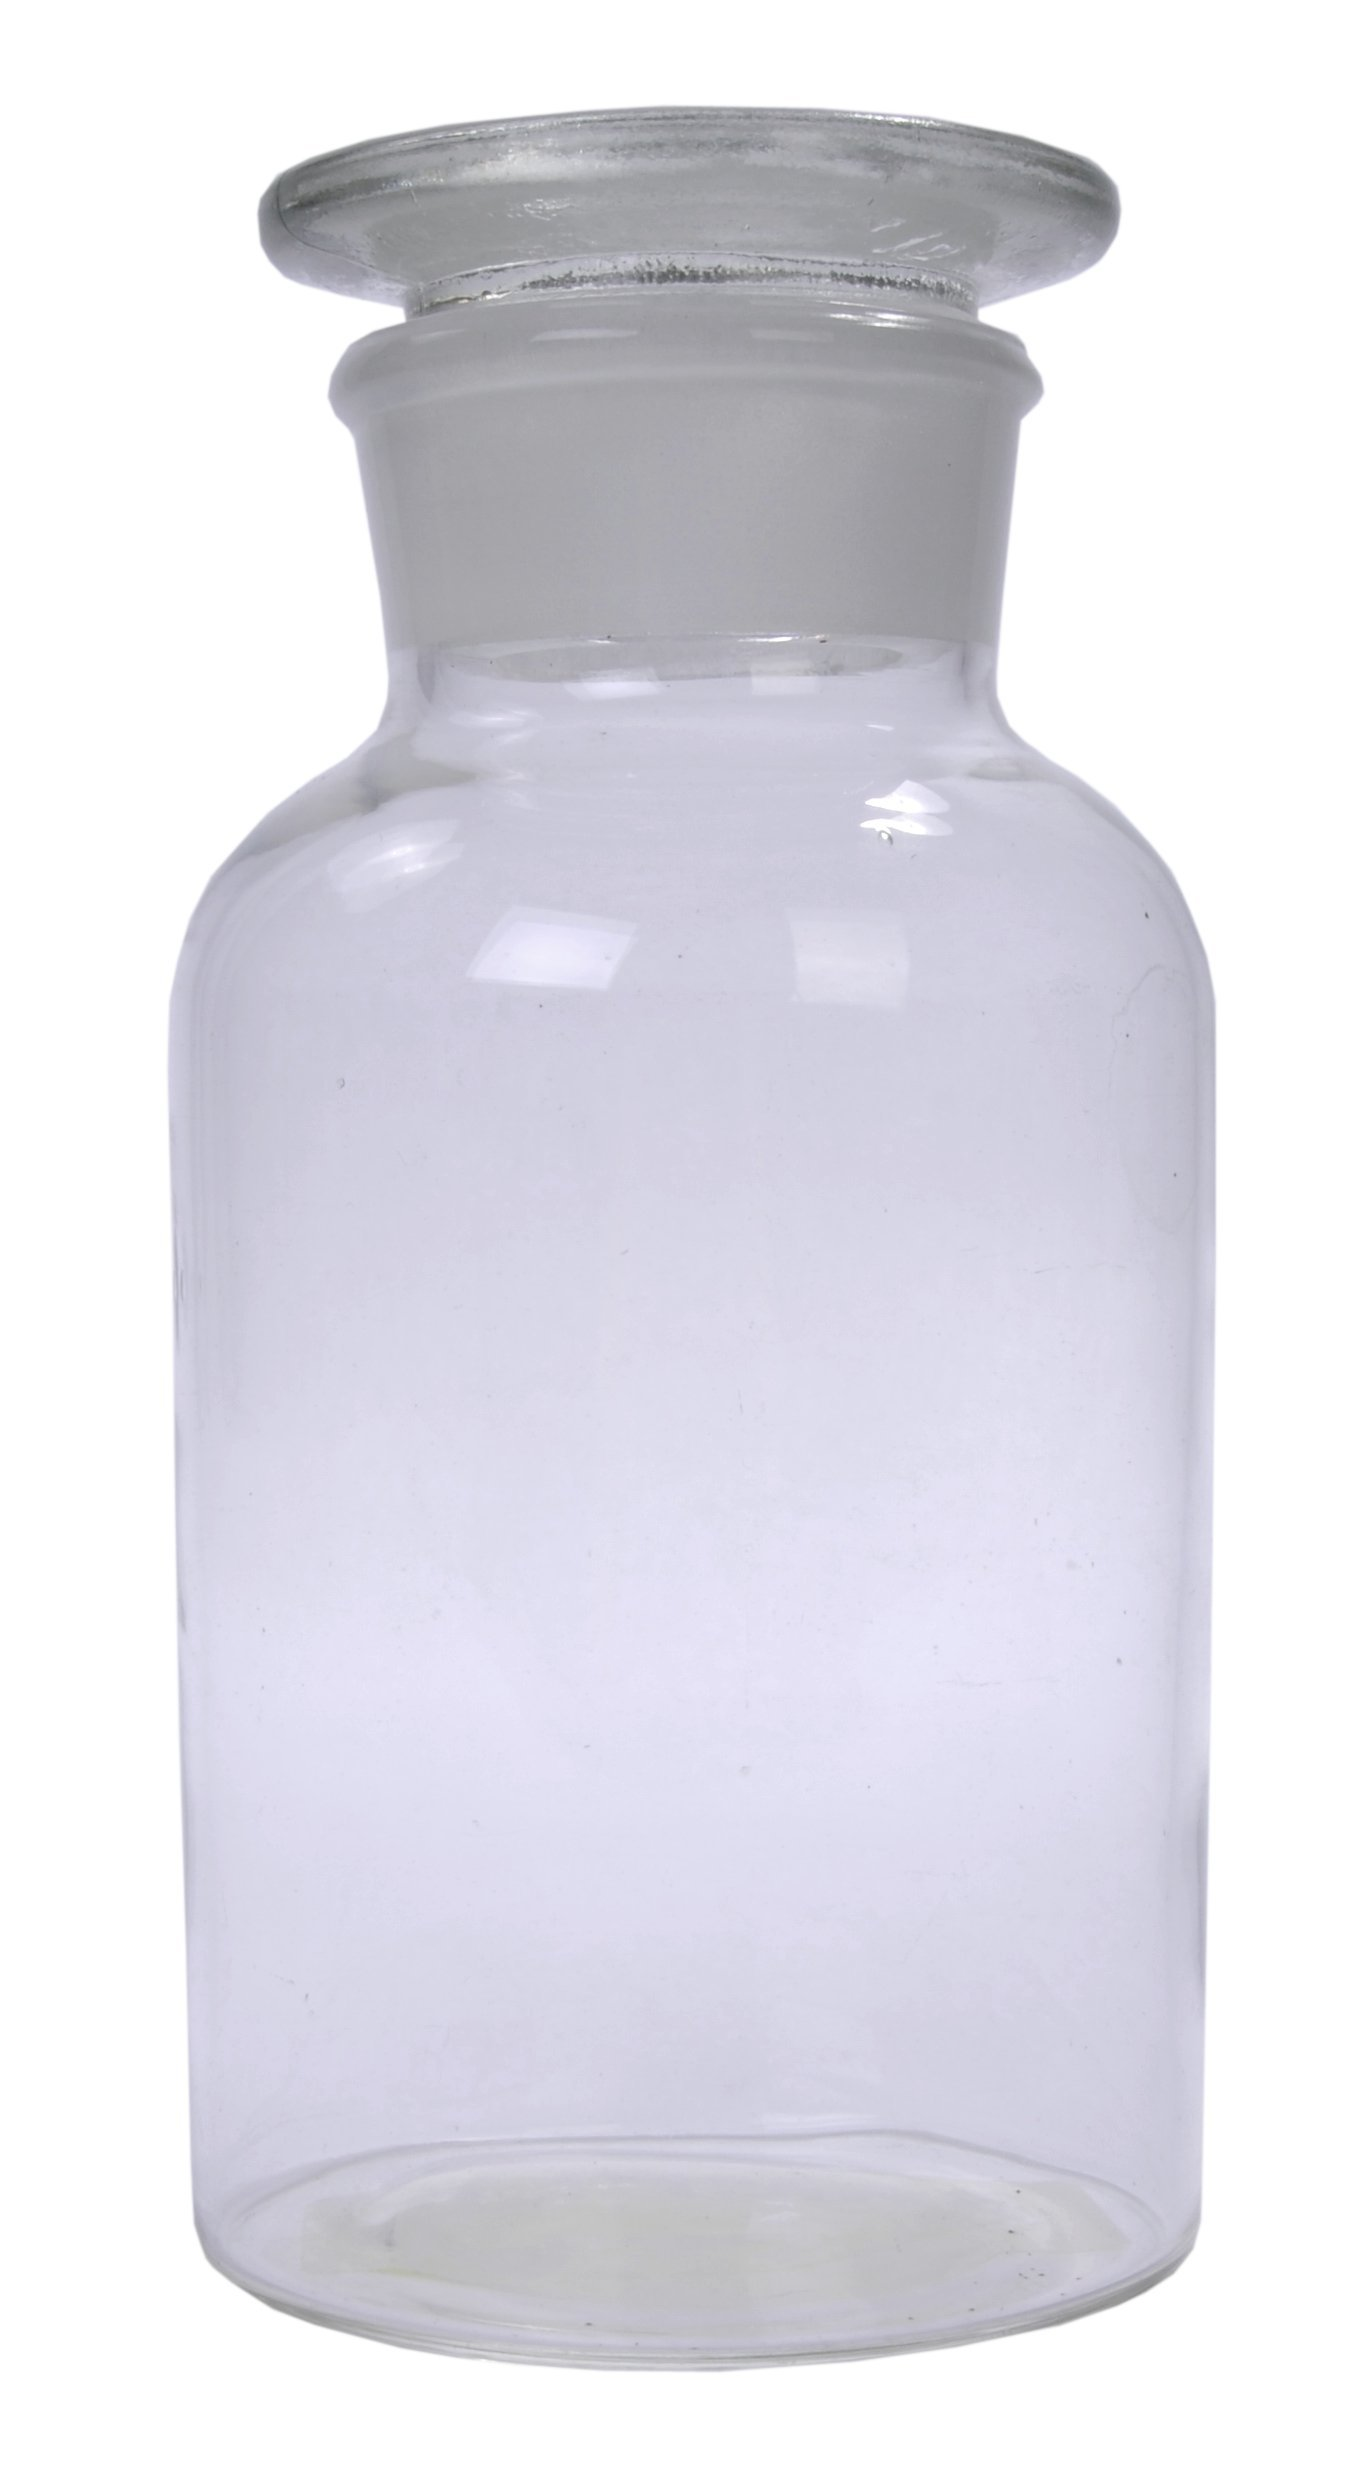 American Educational Clear Flint Glass 500mL Wide Mouth Reagent Bottle with Ground Glass Stopper (Bundle of 5) by American Educational Products